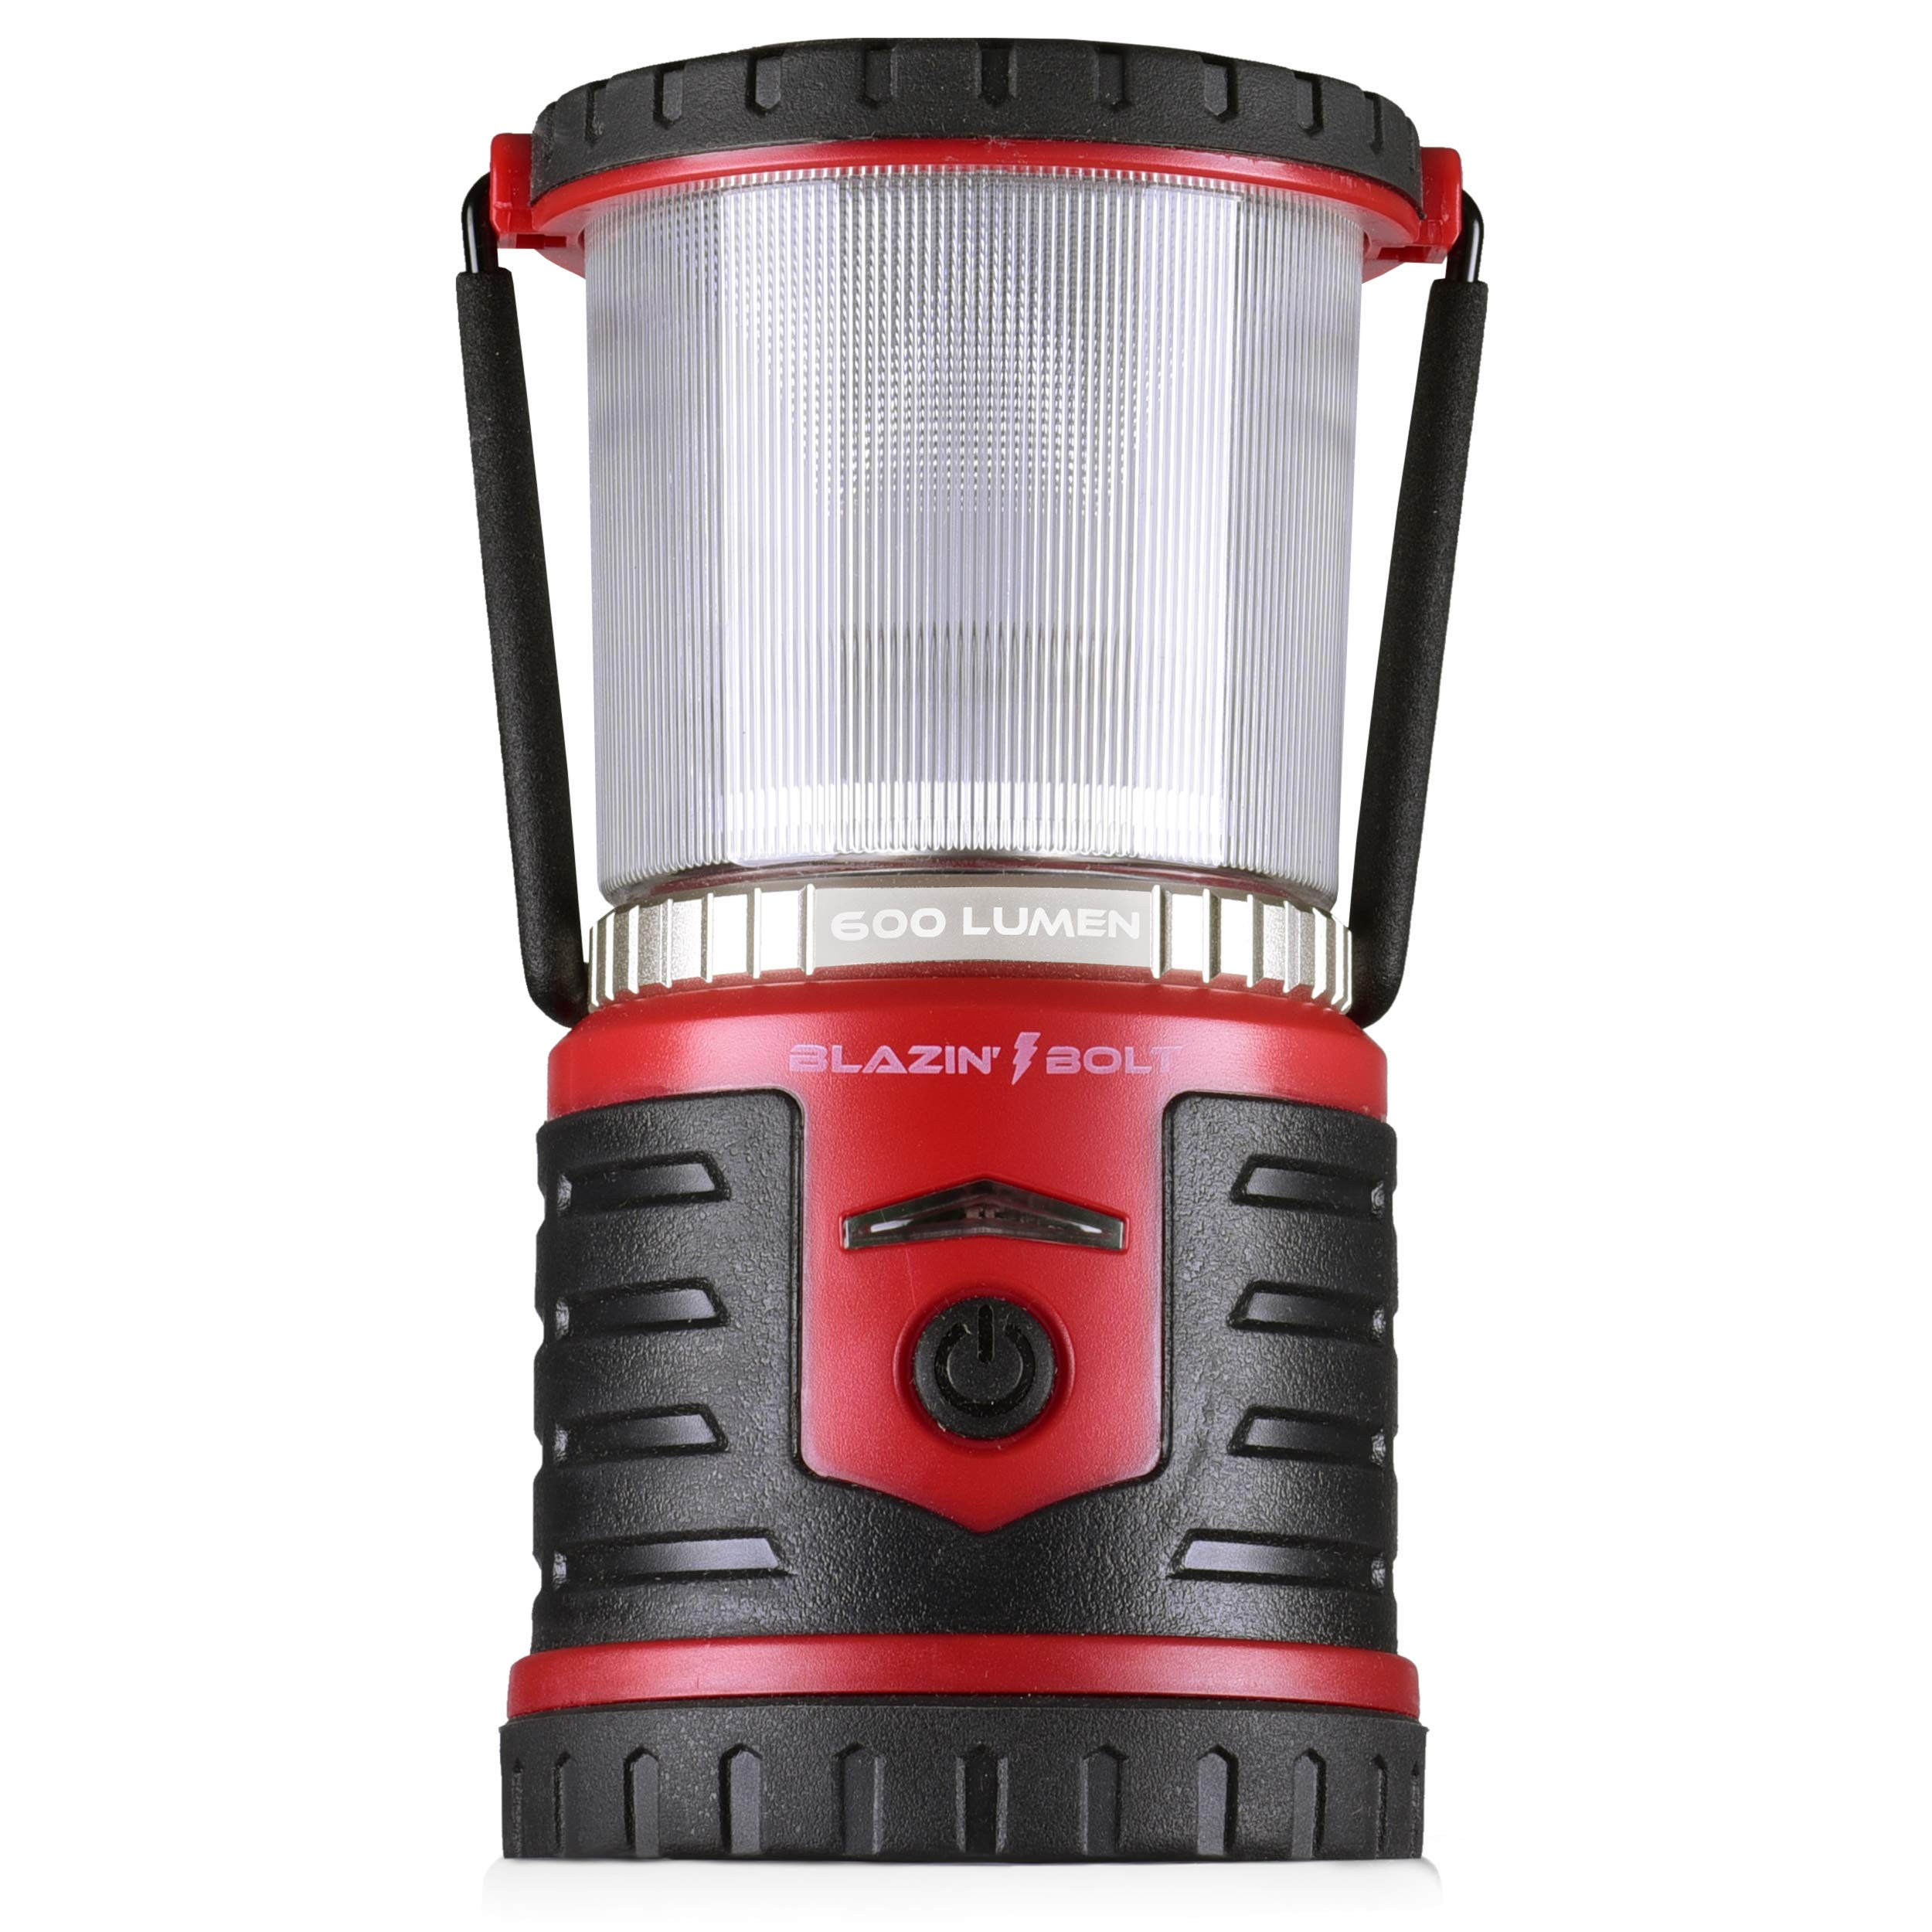 Blazin' Bison Battery Rechargeable LED Lantern | 500 Hour Runtime | Phone Charger | Camping Light (600 Lumen, Red) by Blazin' Bison